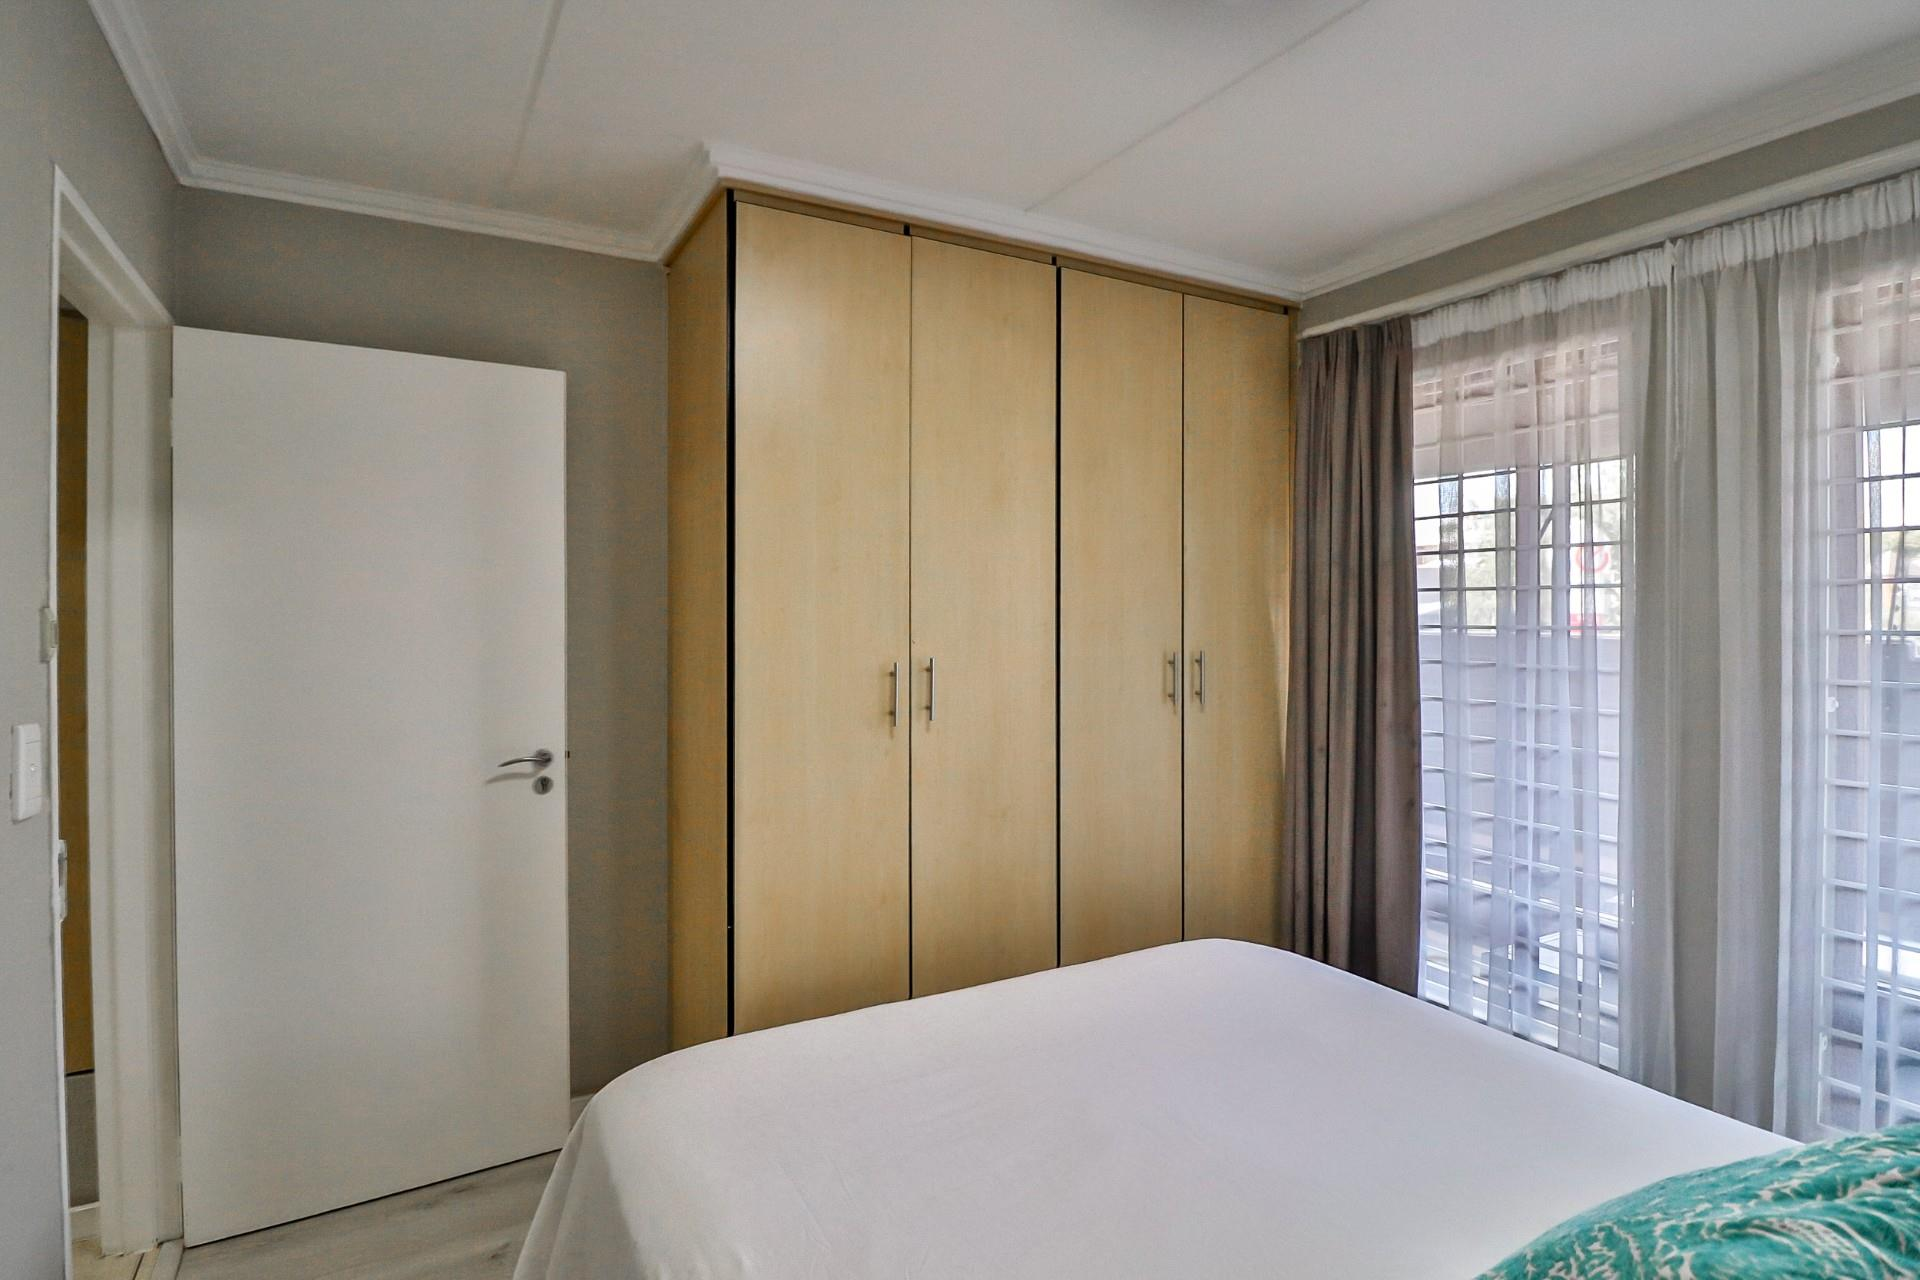 2 Bedroom Apartment / Flat For Sale in Linden